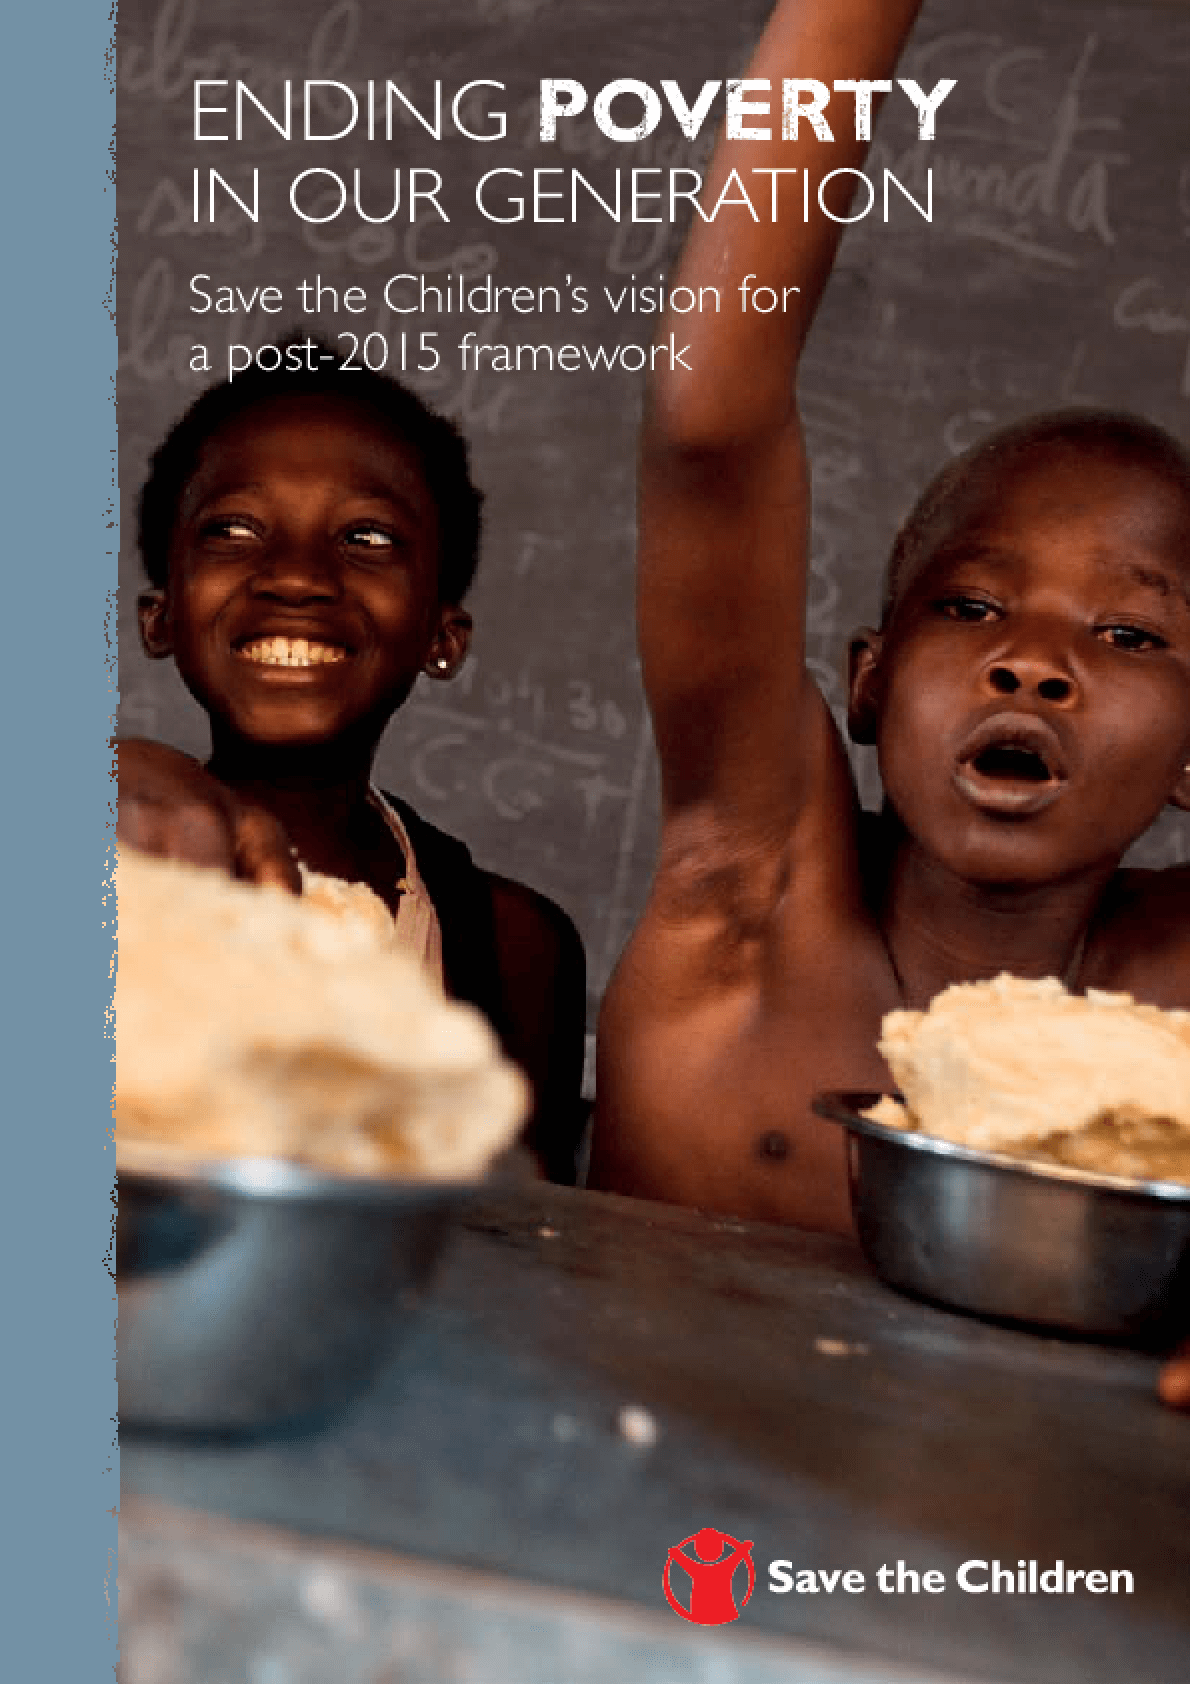 Ending Poverty in Our Generation: Save the Children's Vision for a Post-2015 Framework